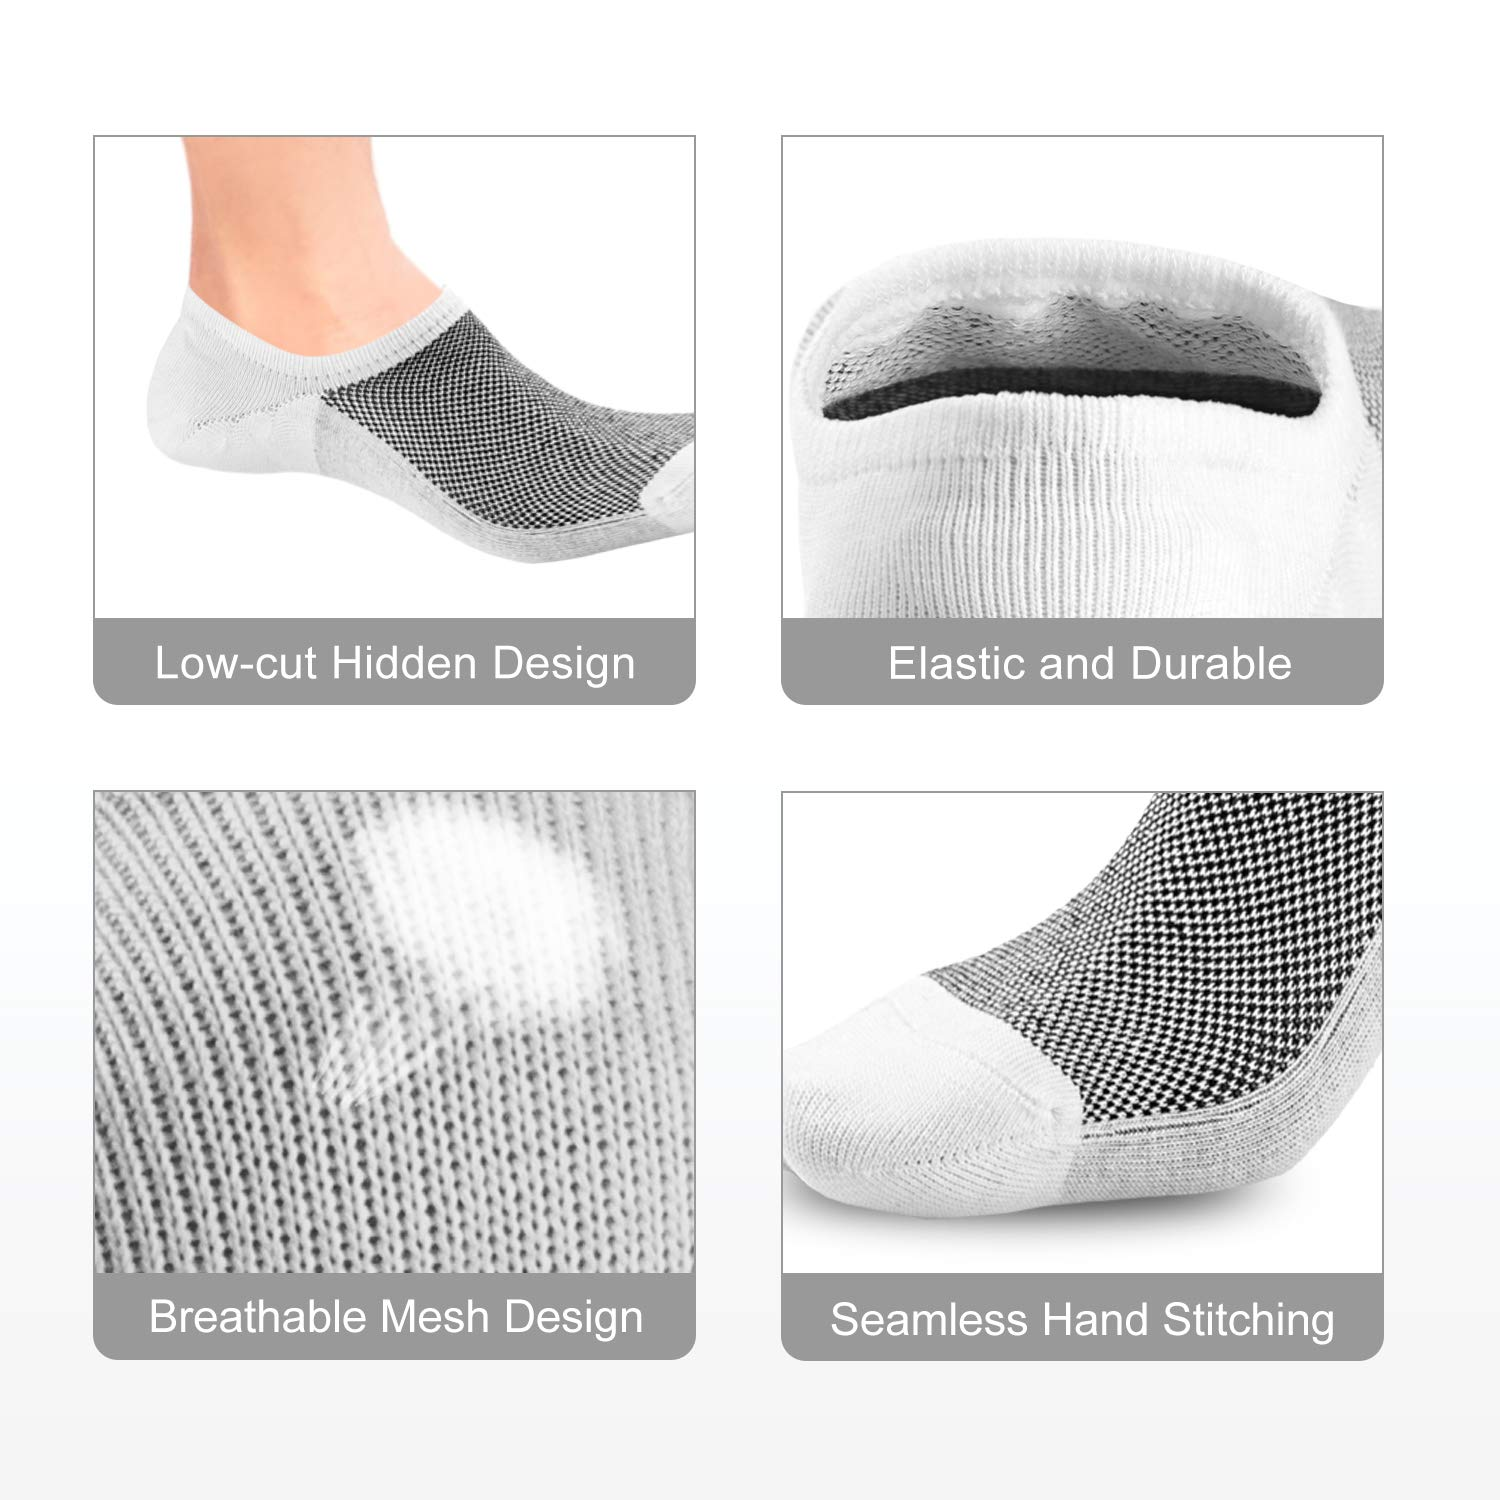 Fiream Low Cut No Show Socks Non Slip Socks for Women and Men Casual Invisible Socks 6 Pairs Black